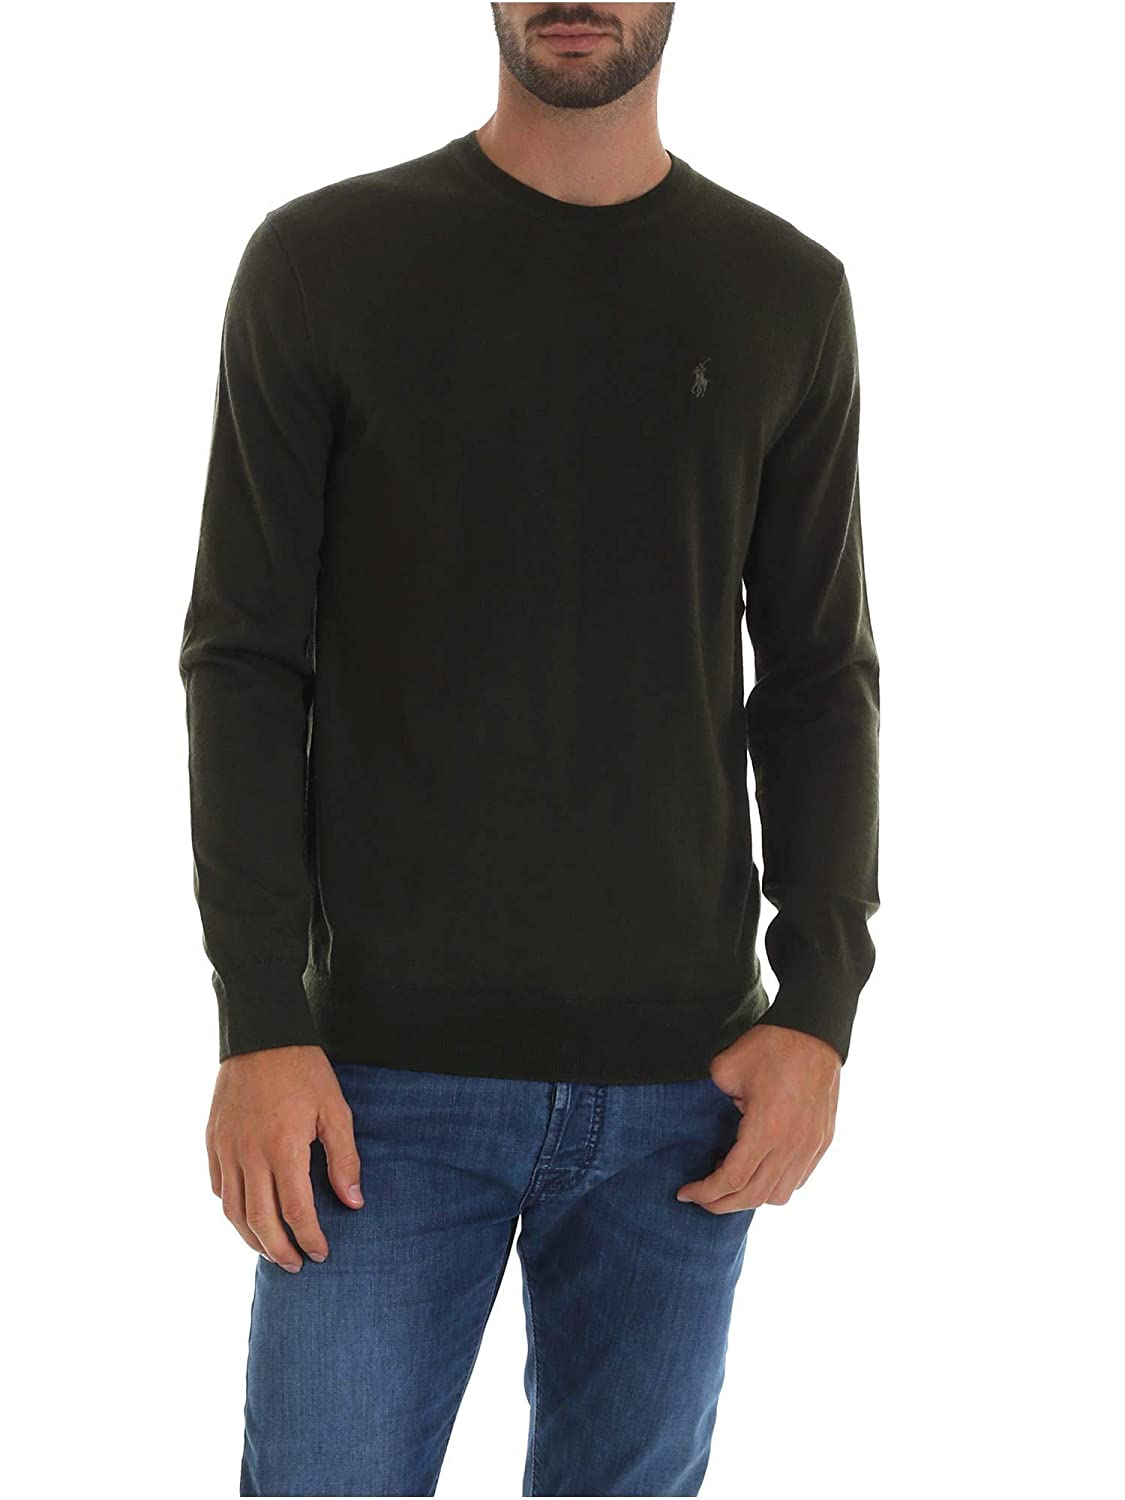 Polo Ralph Lauren Merino Wool-LS SF cn PP Verde Uomo: Amazon.es ...